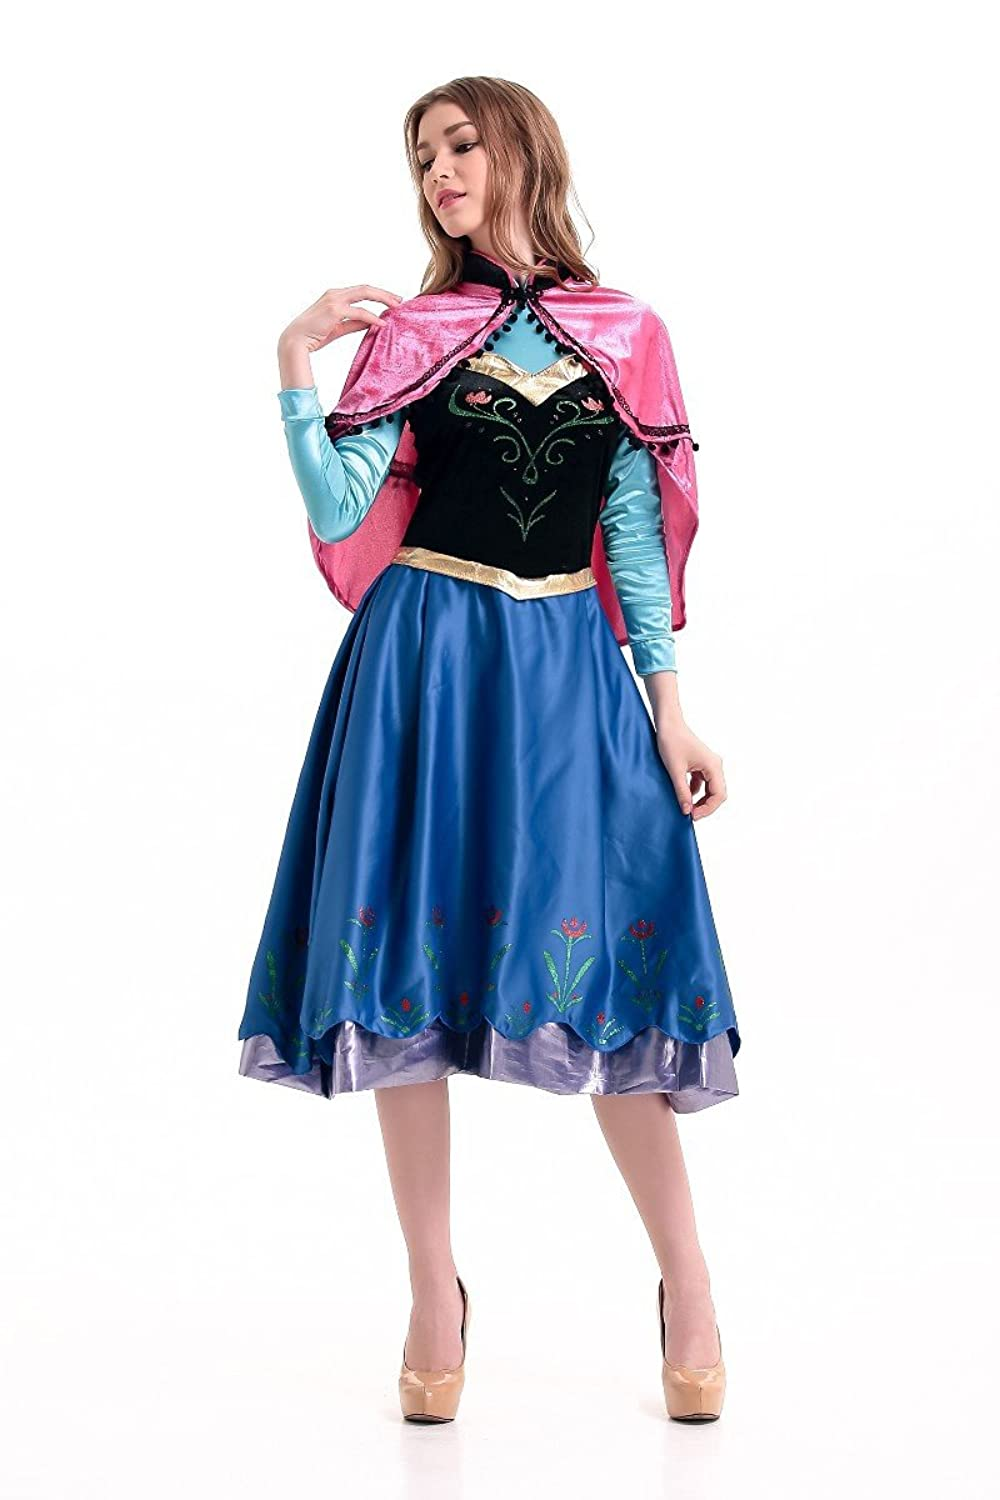 amazoncom disney frozen inspired anna winter dress adult costume halloween cosplay s xl s clothing - Halloween Anna Costume